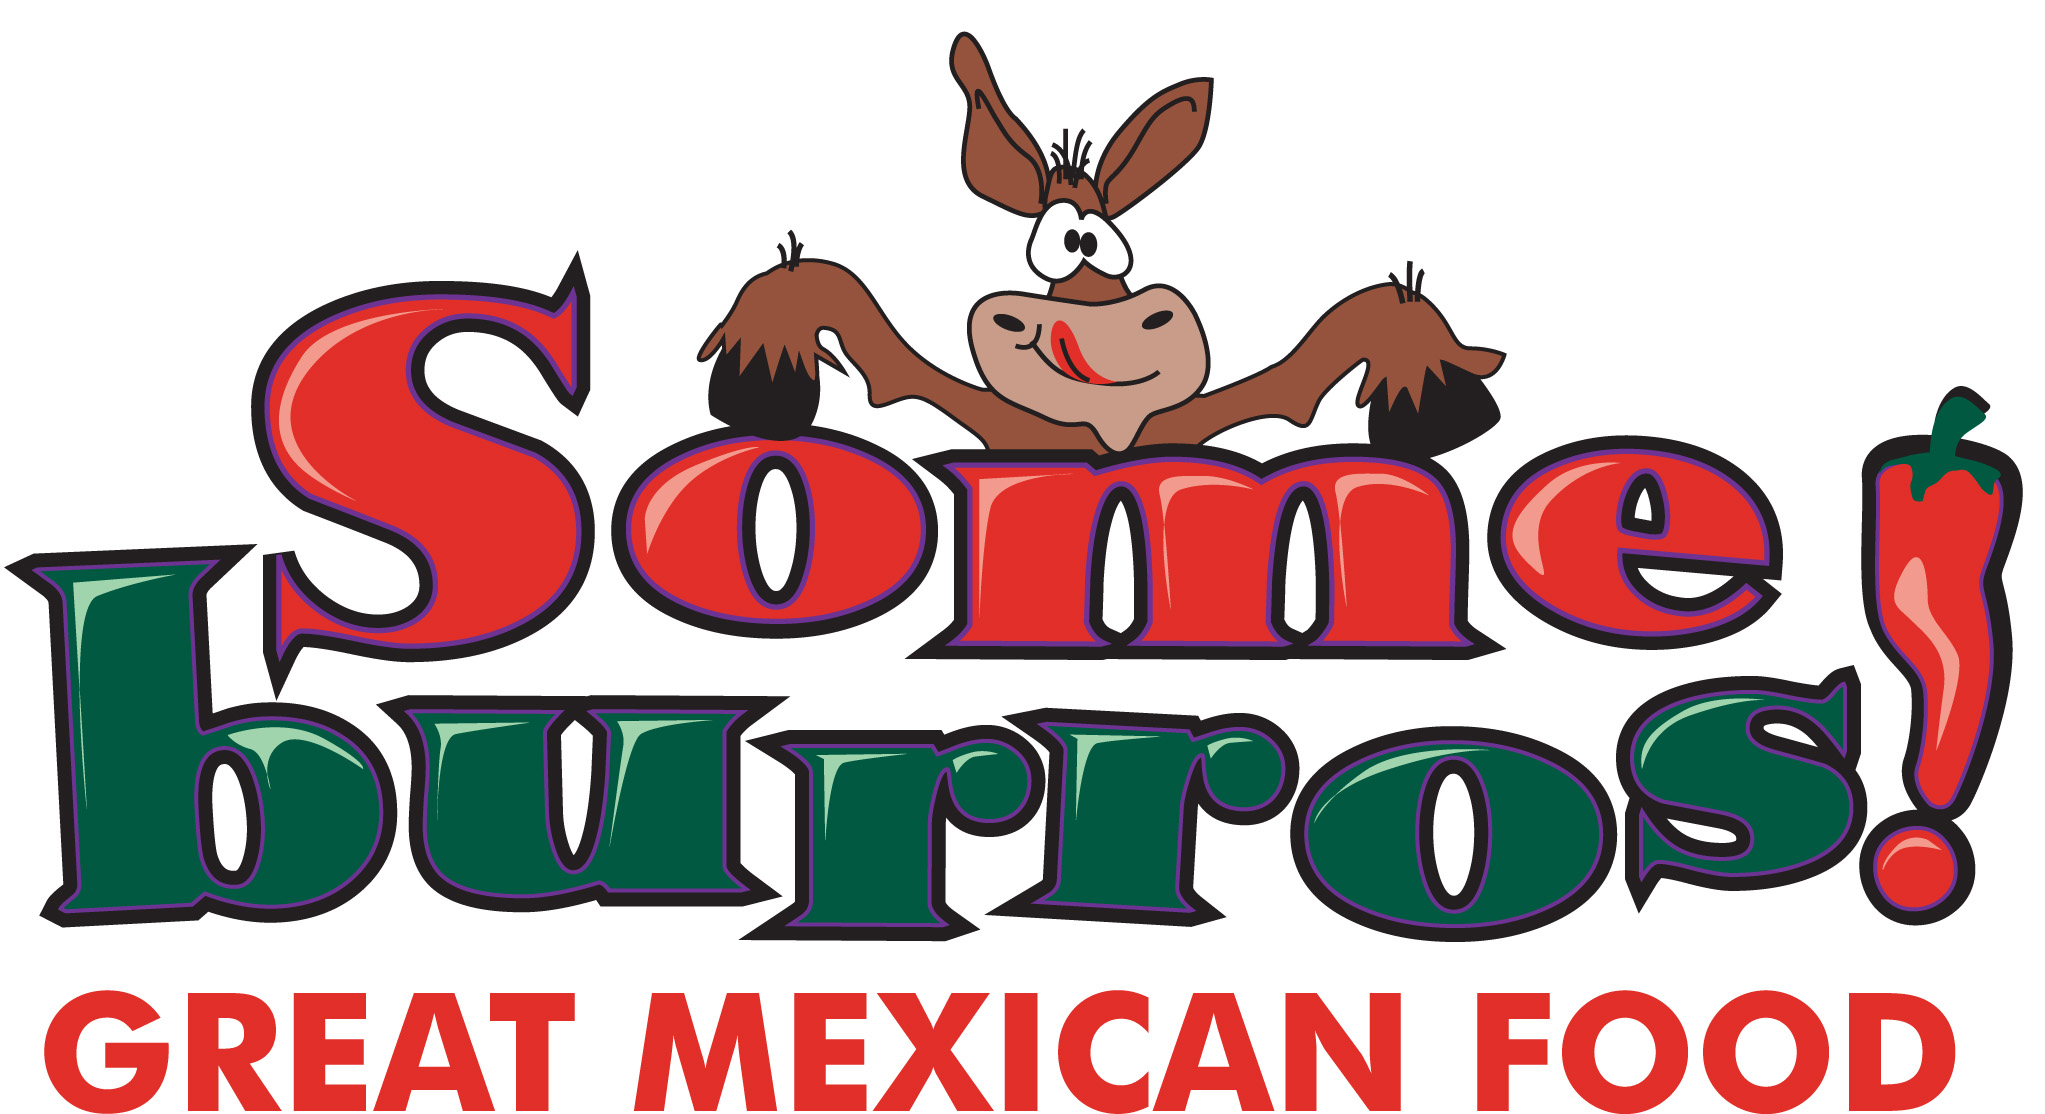 Someburros Mexican Food